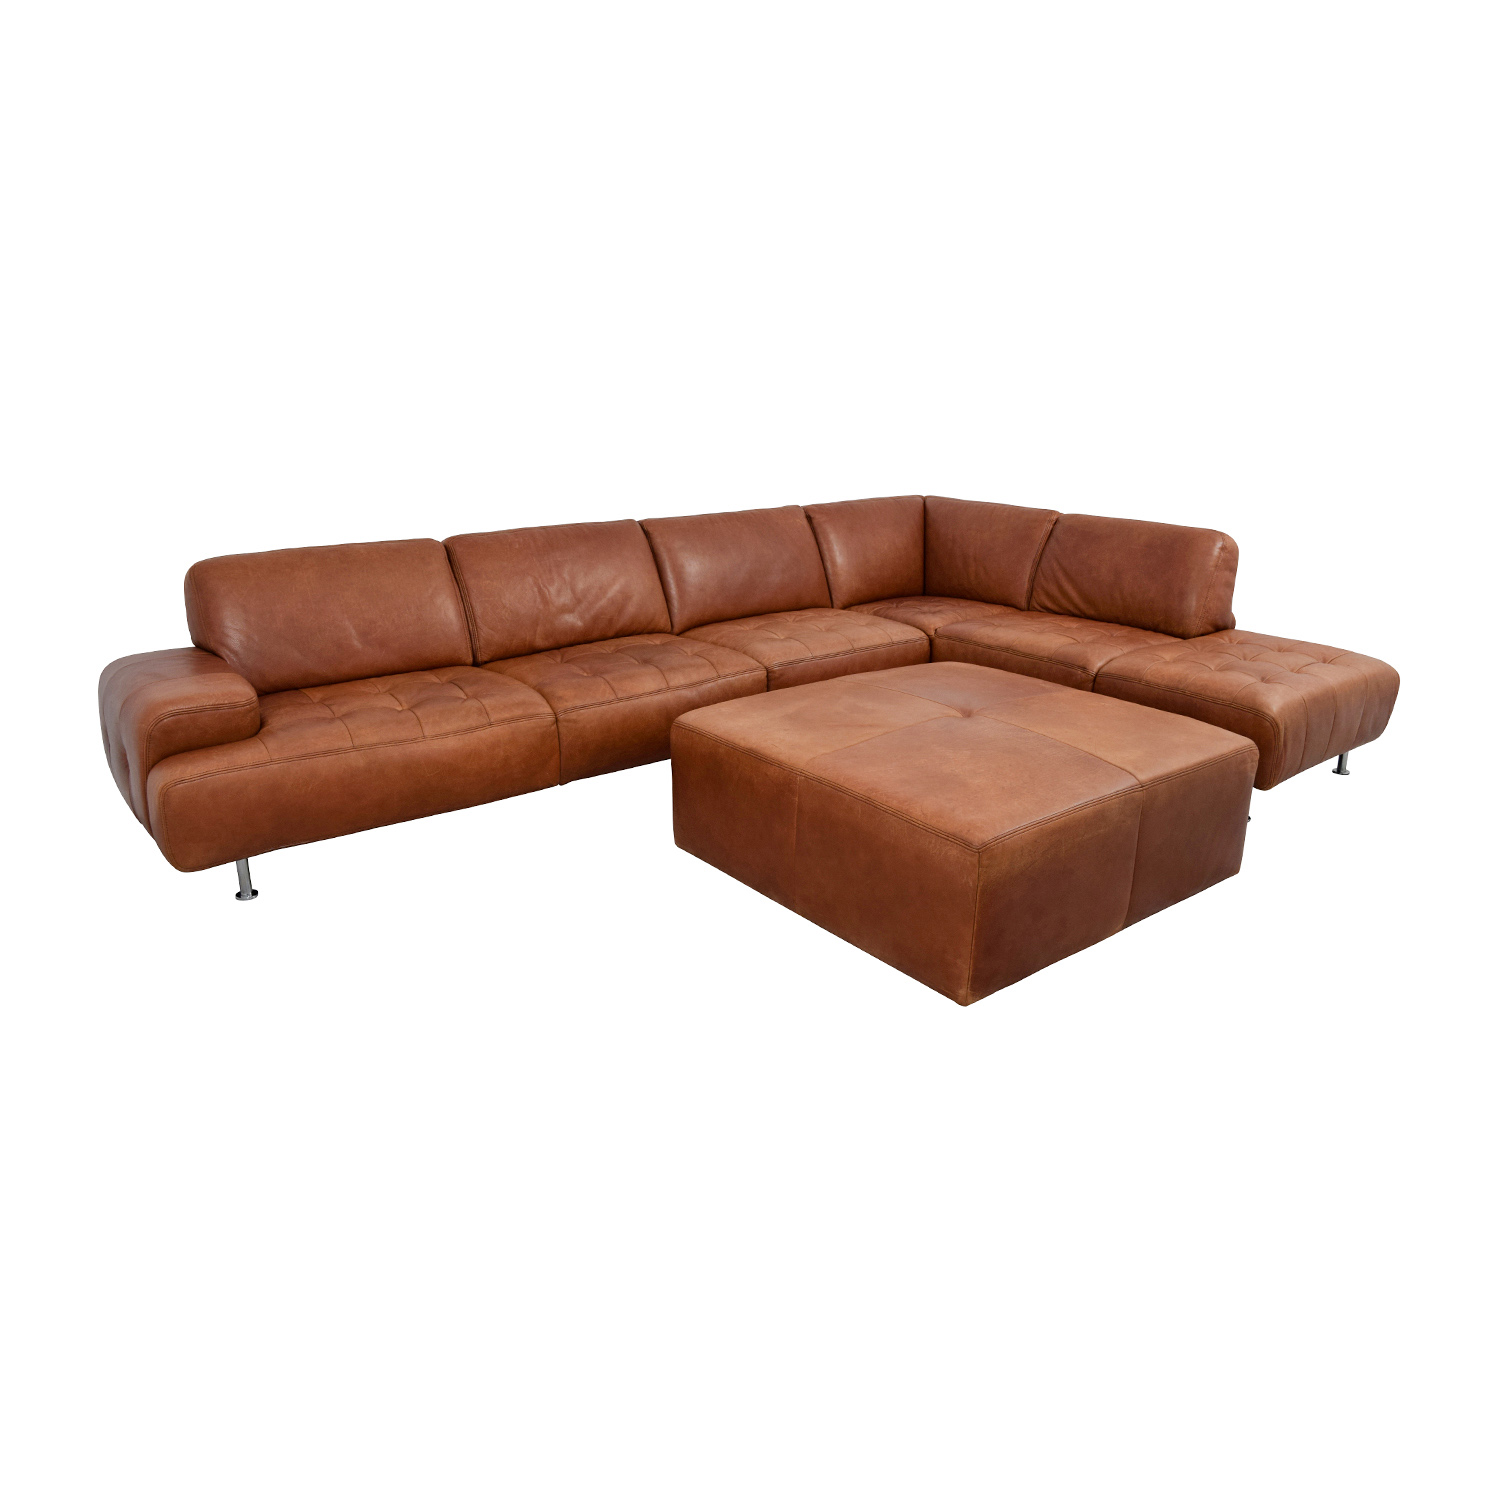 46 OFF W Schillig W Schillig Leather Sectional With